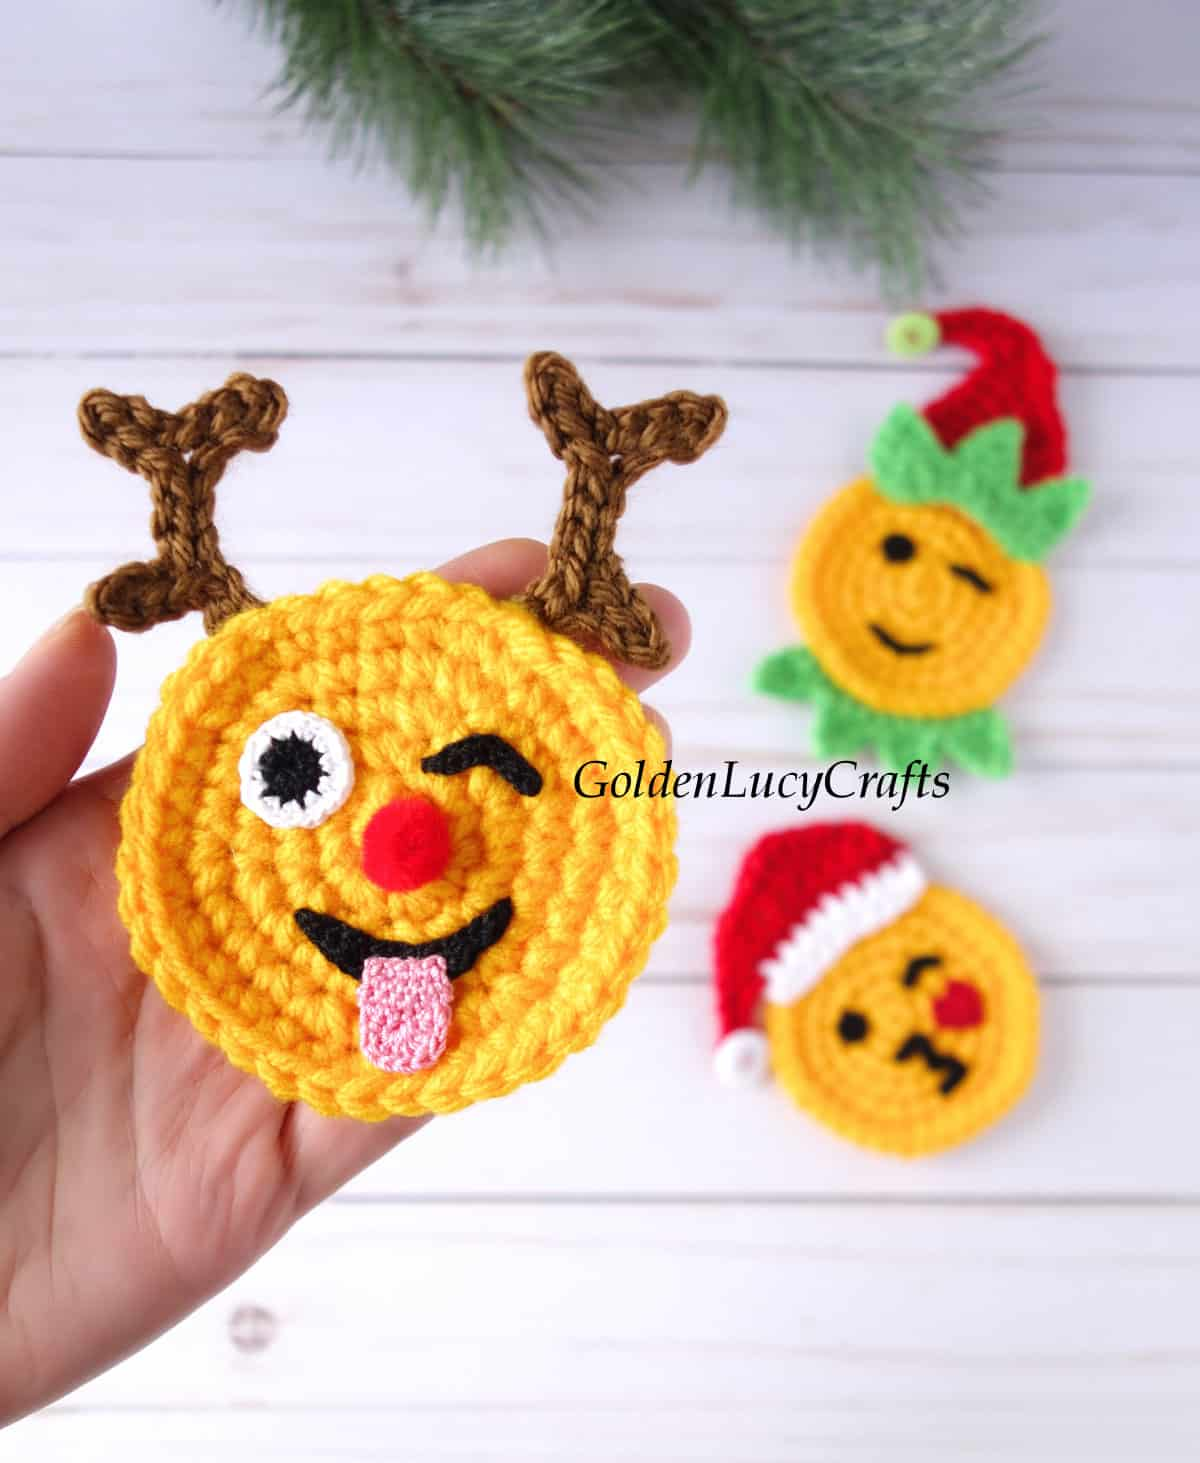 Crochet reindeer emoji in the palm of a hand.